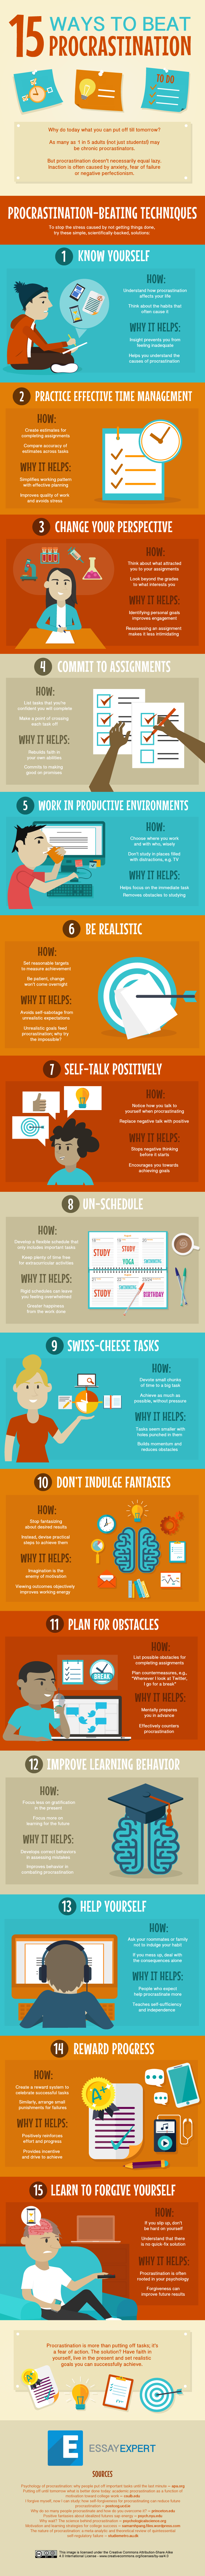 15-Ways-to-Beat-Procrastination